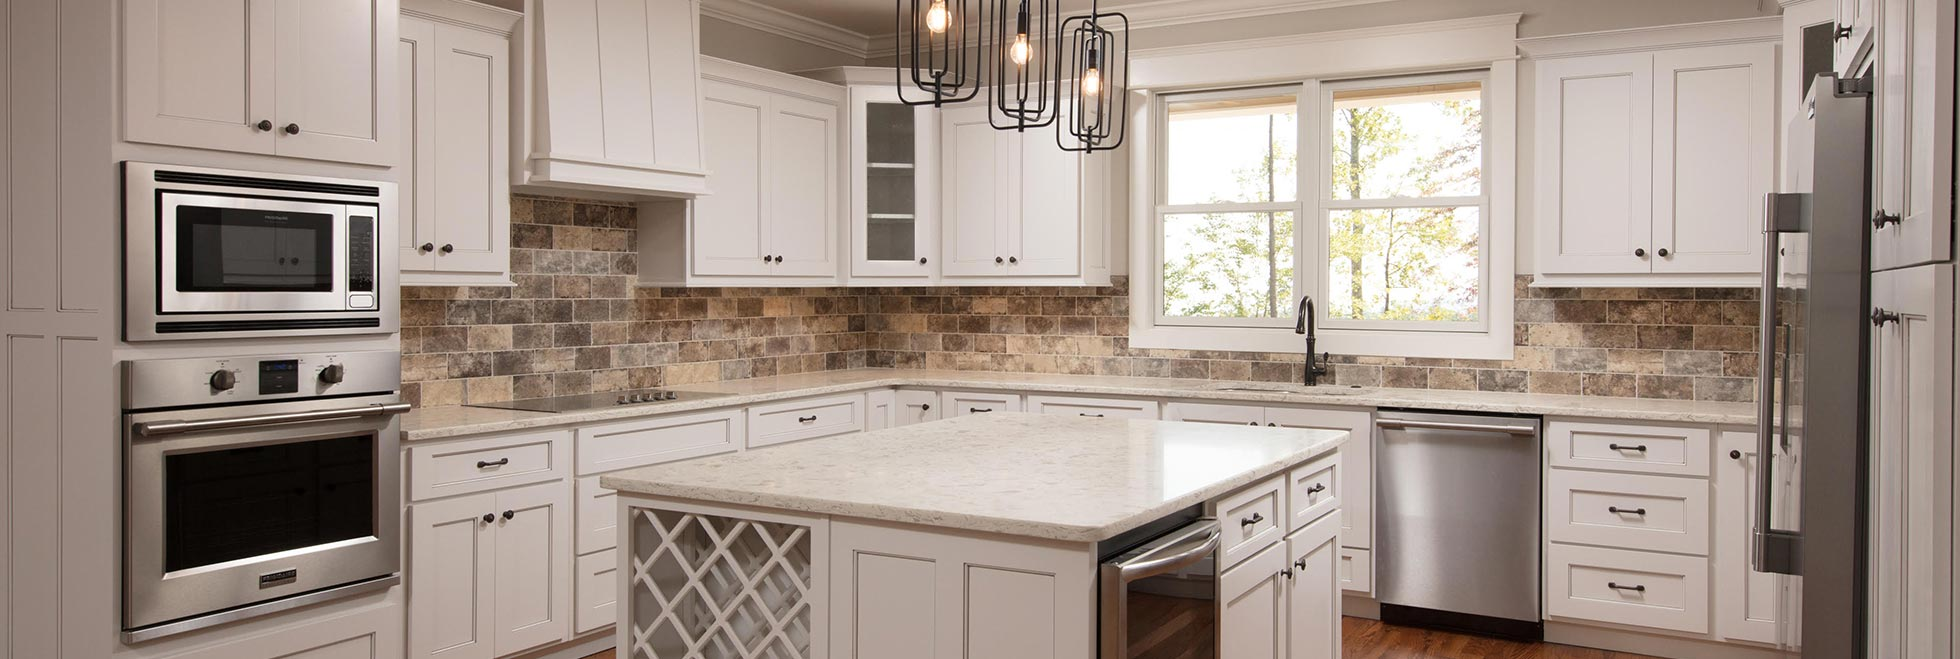 Chattanooga General Contractor